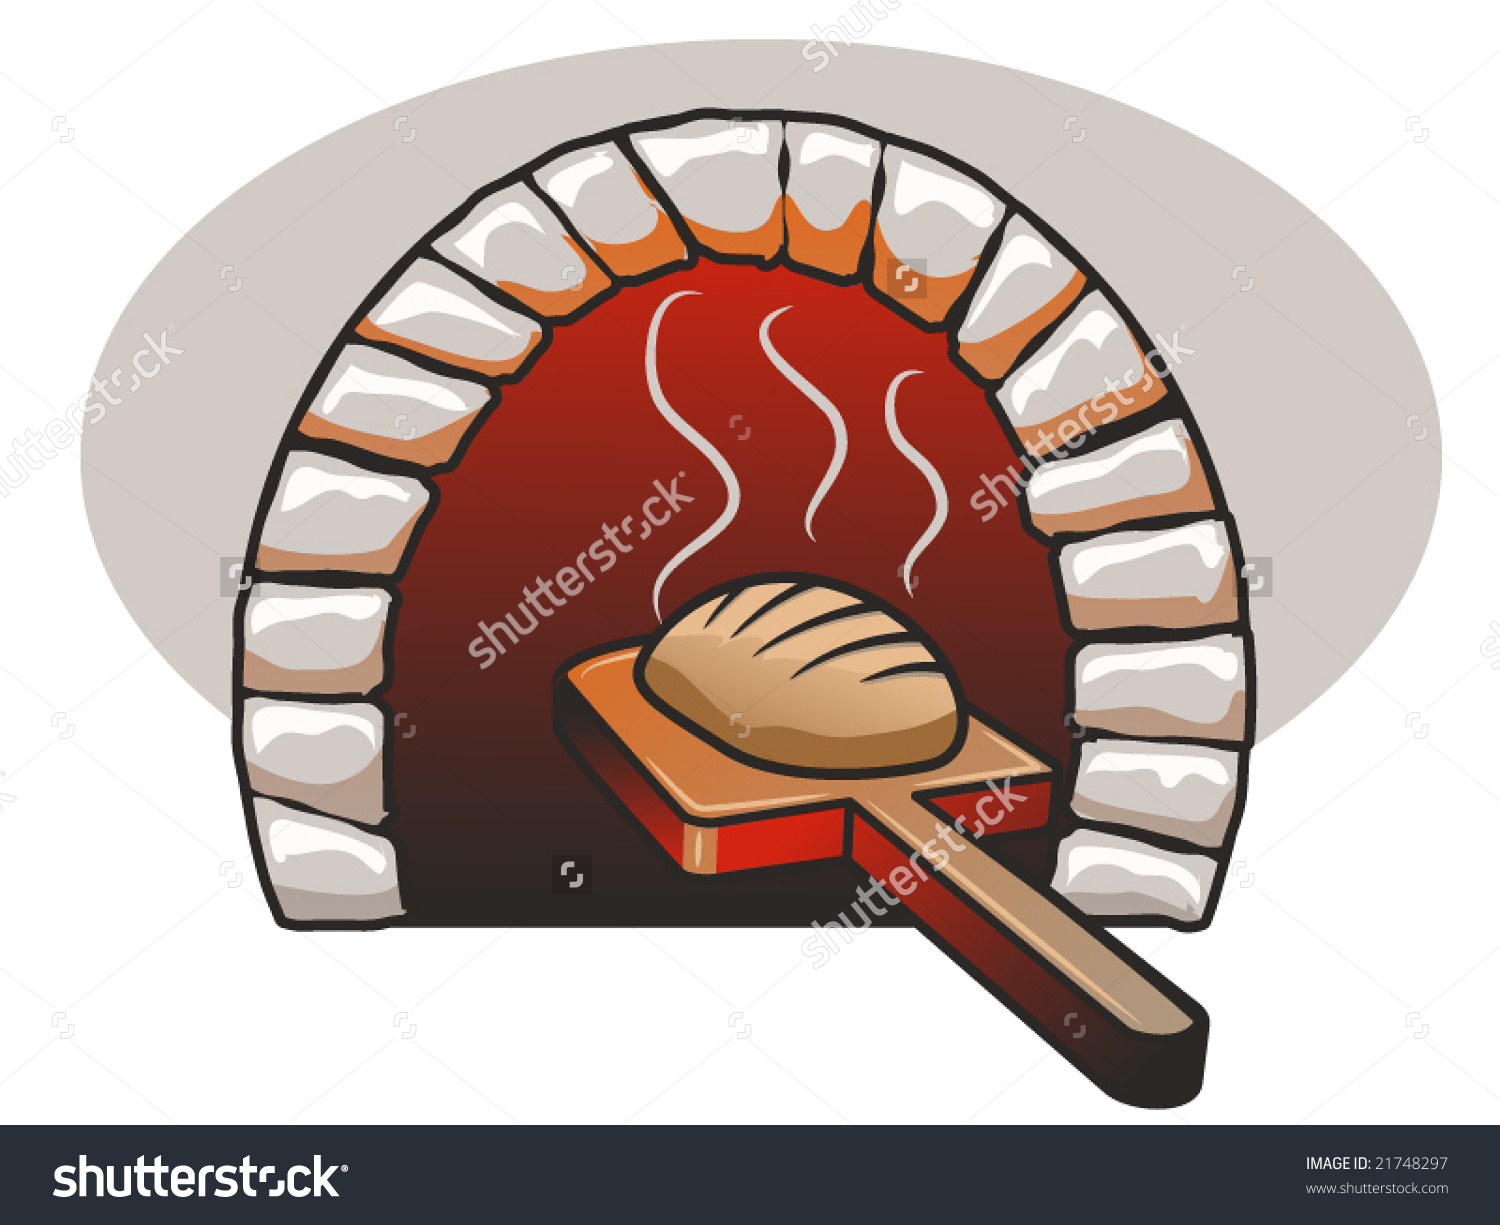 Stone Bread Baking in Oven Clip Art.